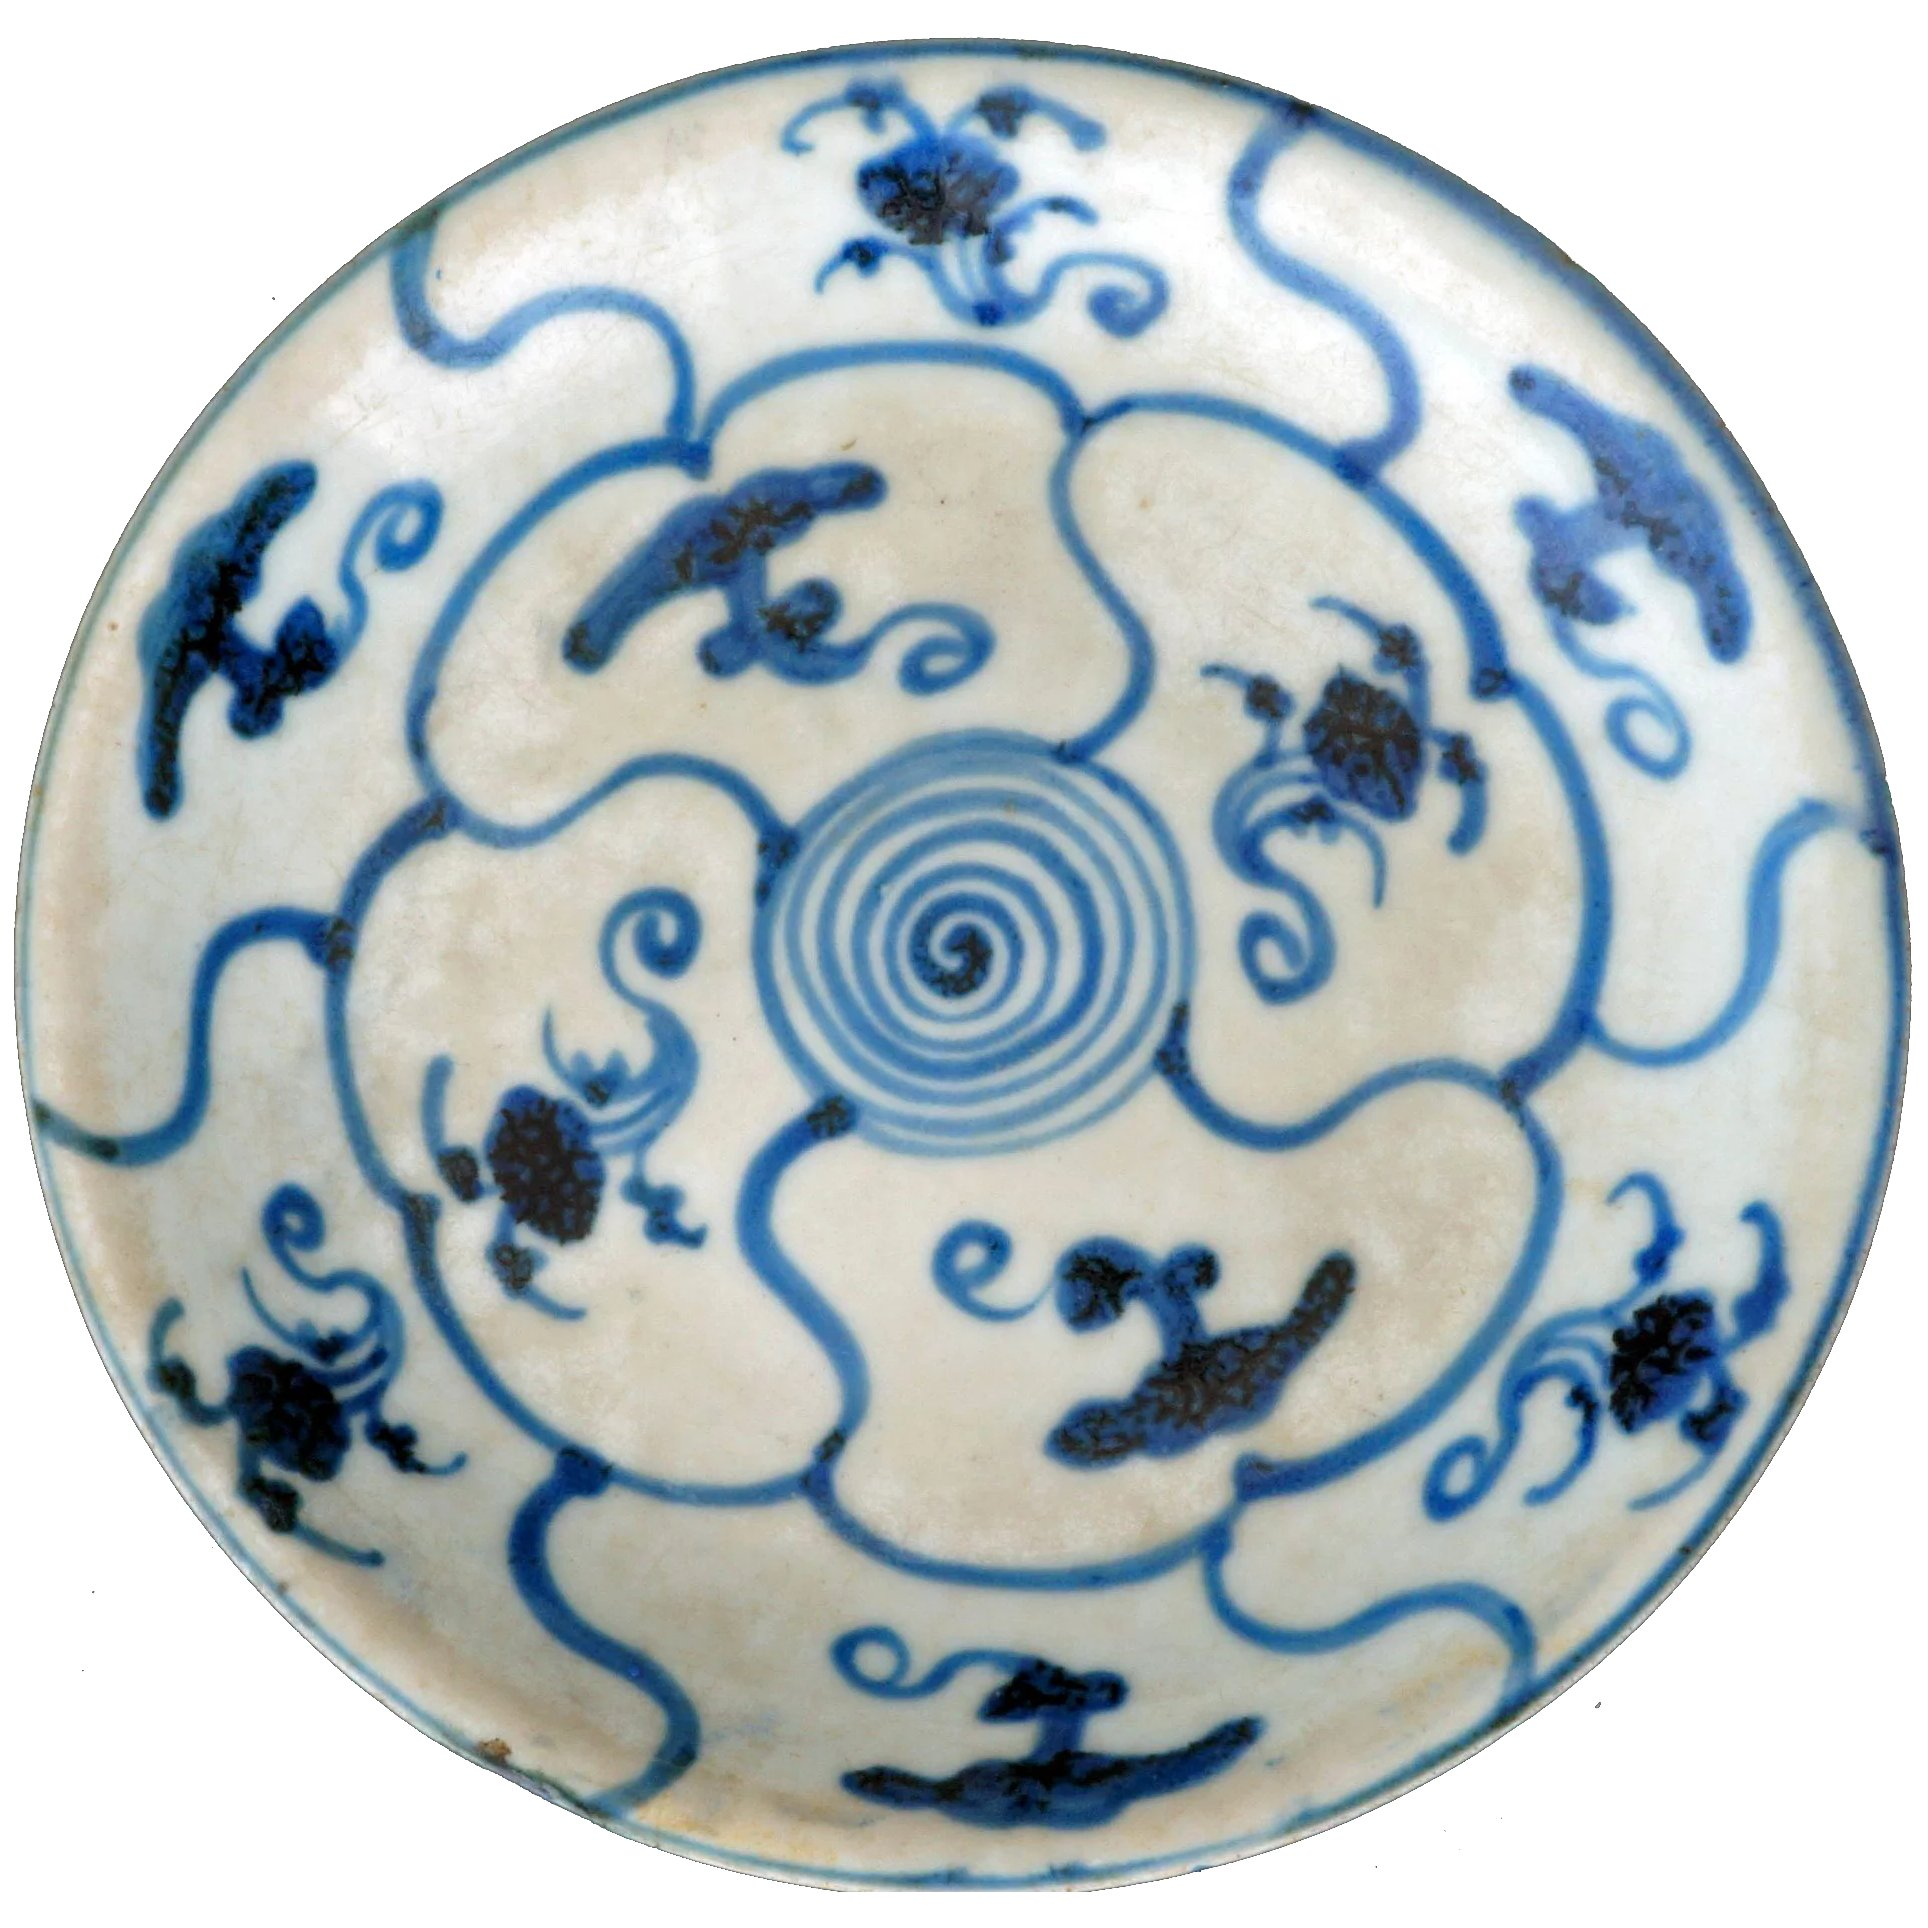 Chinese Ming porcelain blue and white dish with fungus and floral motif -  7th century